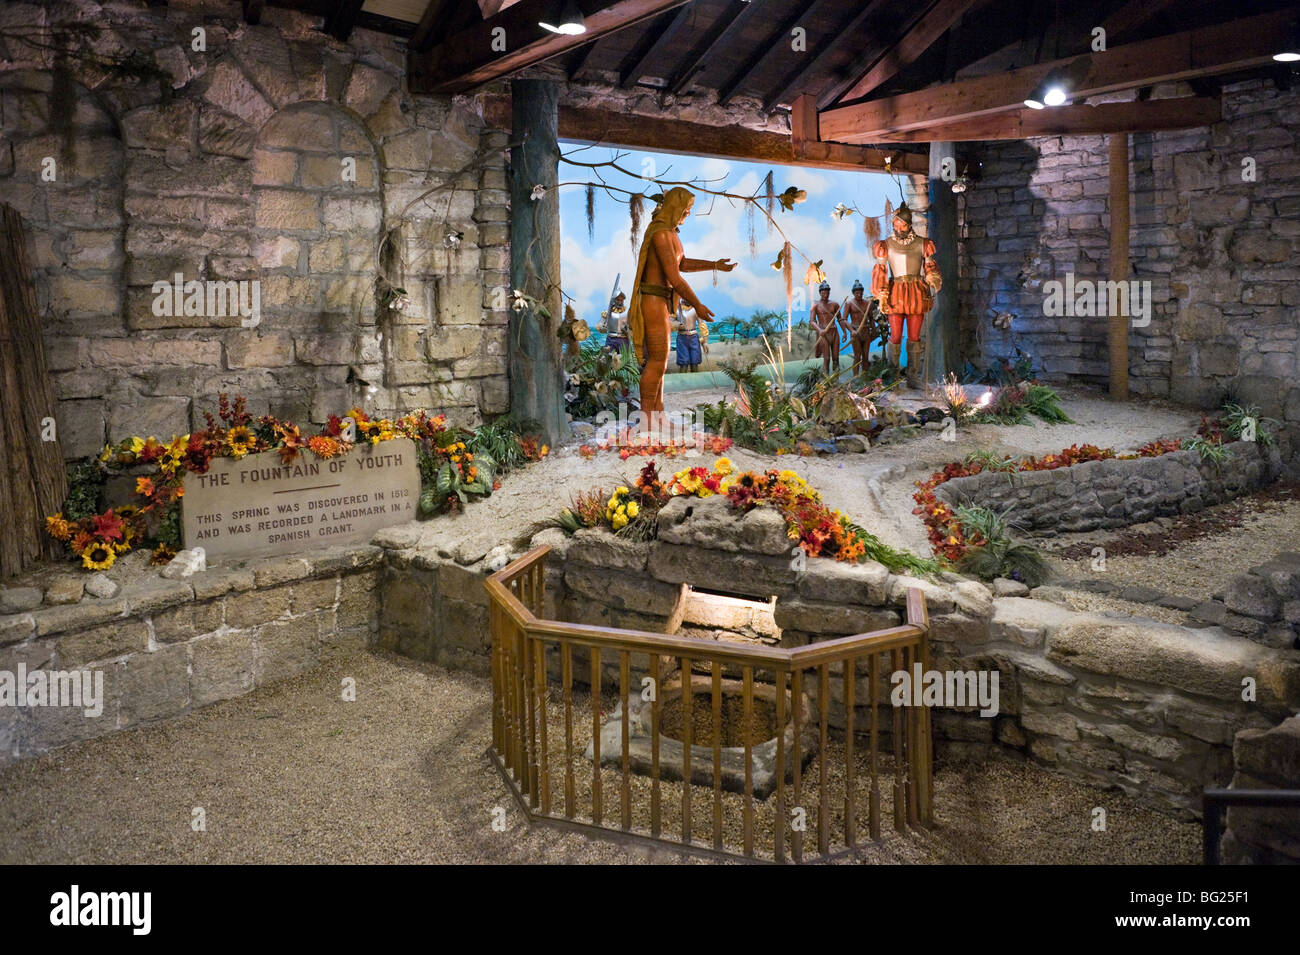 The Fountain of Youth with a diorama of Spanish soldiers and native indians behind, St Augustine, Florida, USA - Stock Image